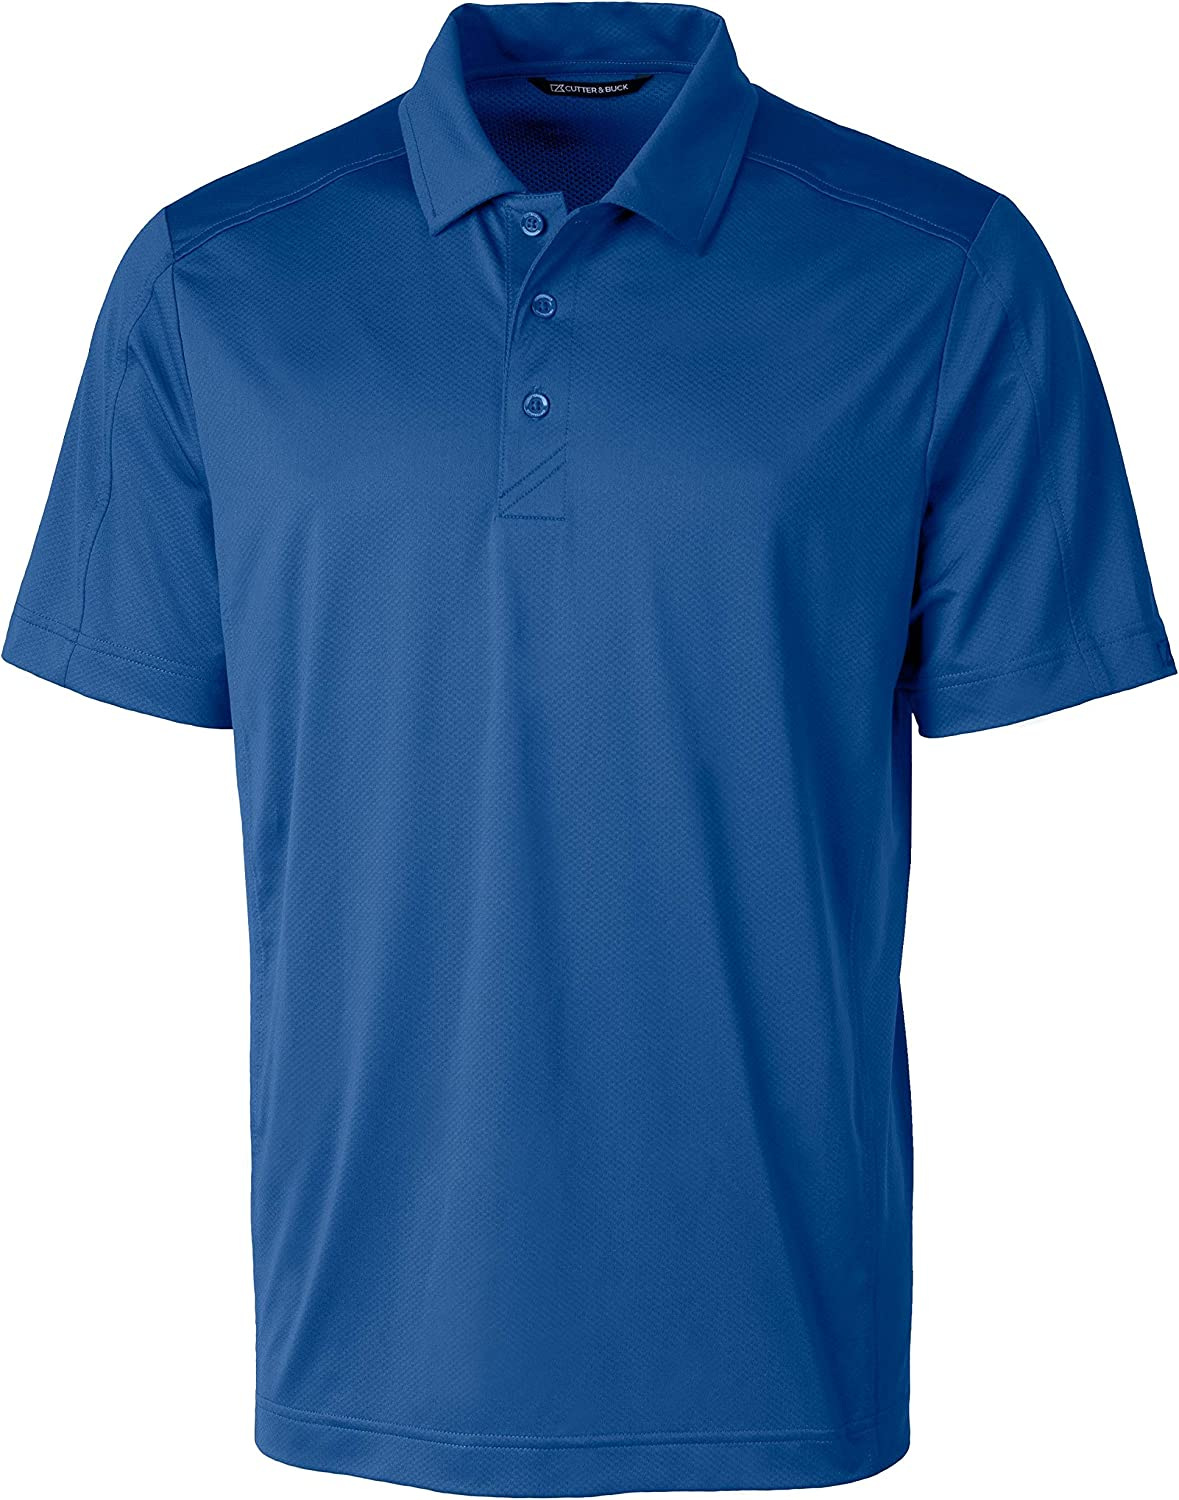 Cutter New products world's highest quality popular Buck Polo Now free shipping Men's